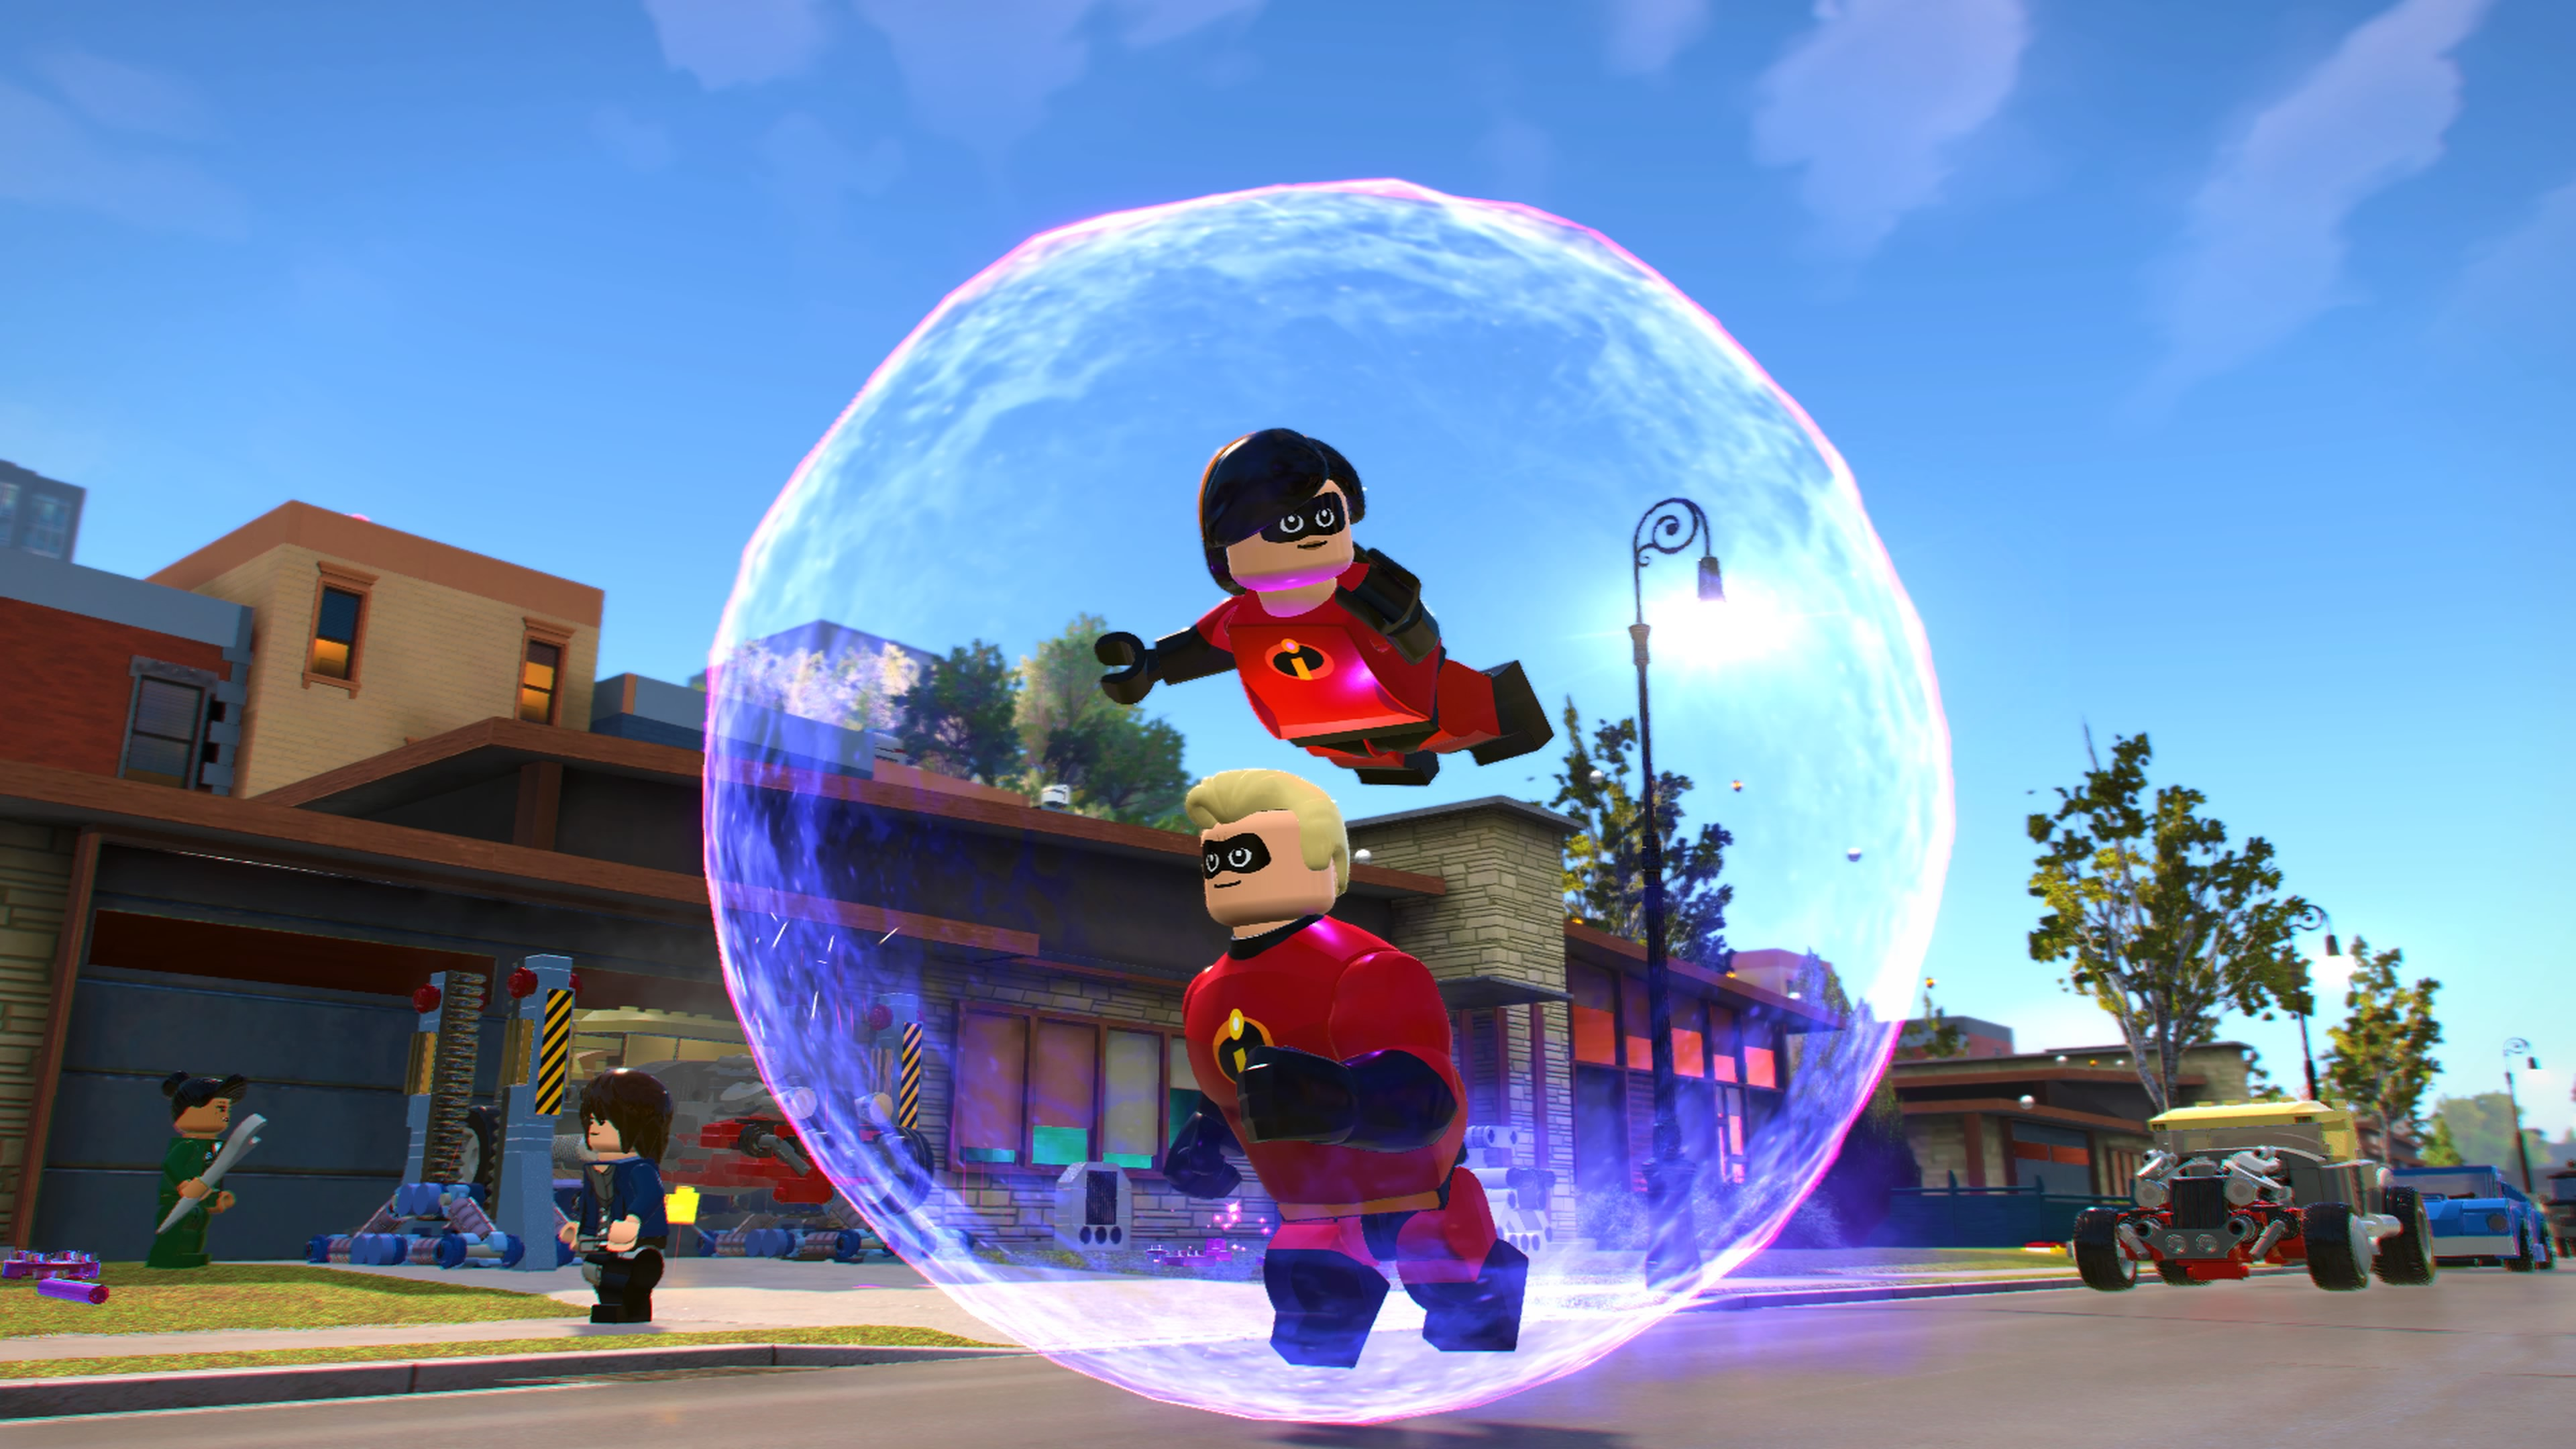 Warner Bros  The LEGO Group and Disney Pixar announce LEGO  The     Warner Bros  The LEGO Group and Disney Pixar announce LEGO  The Incredibles